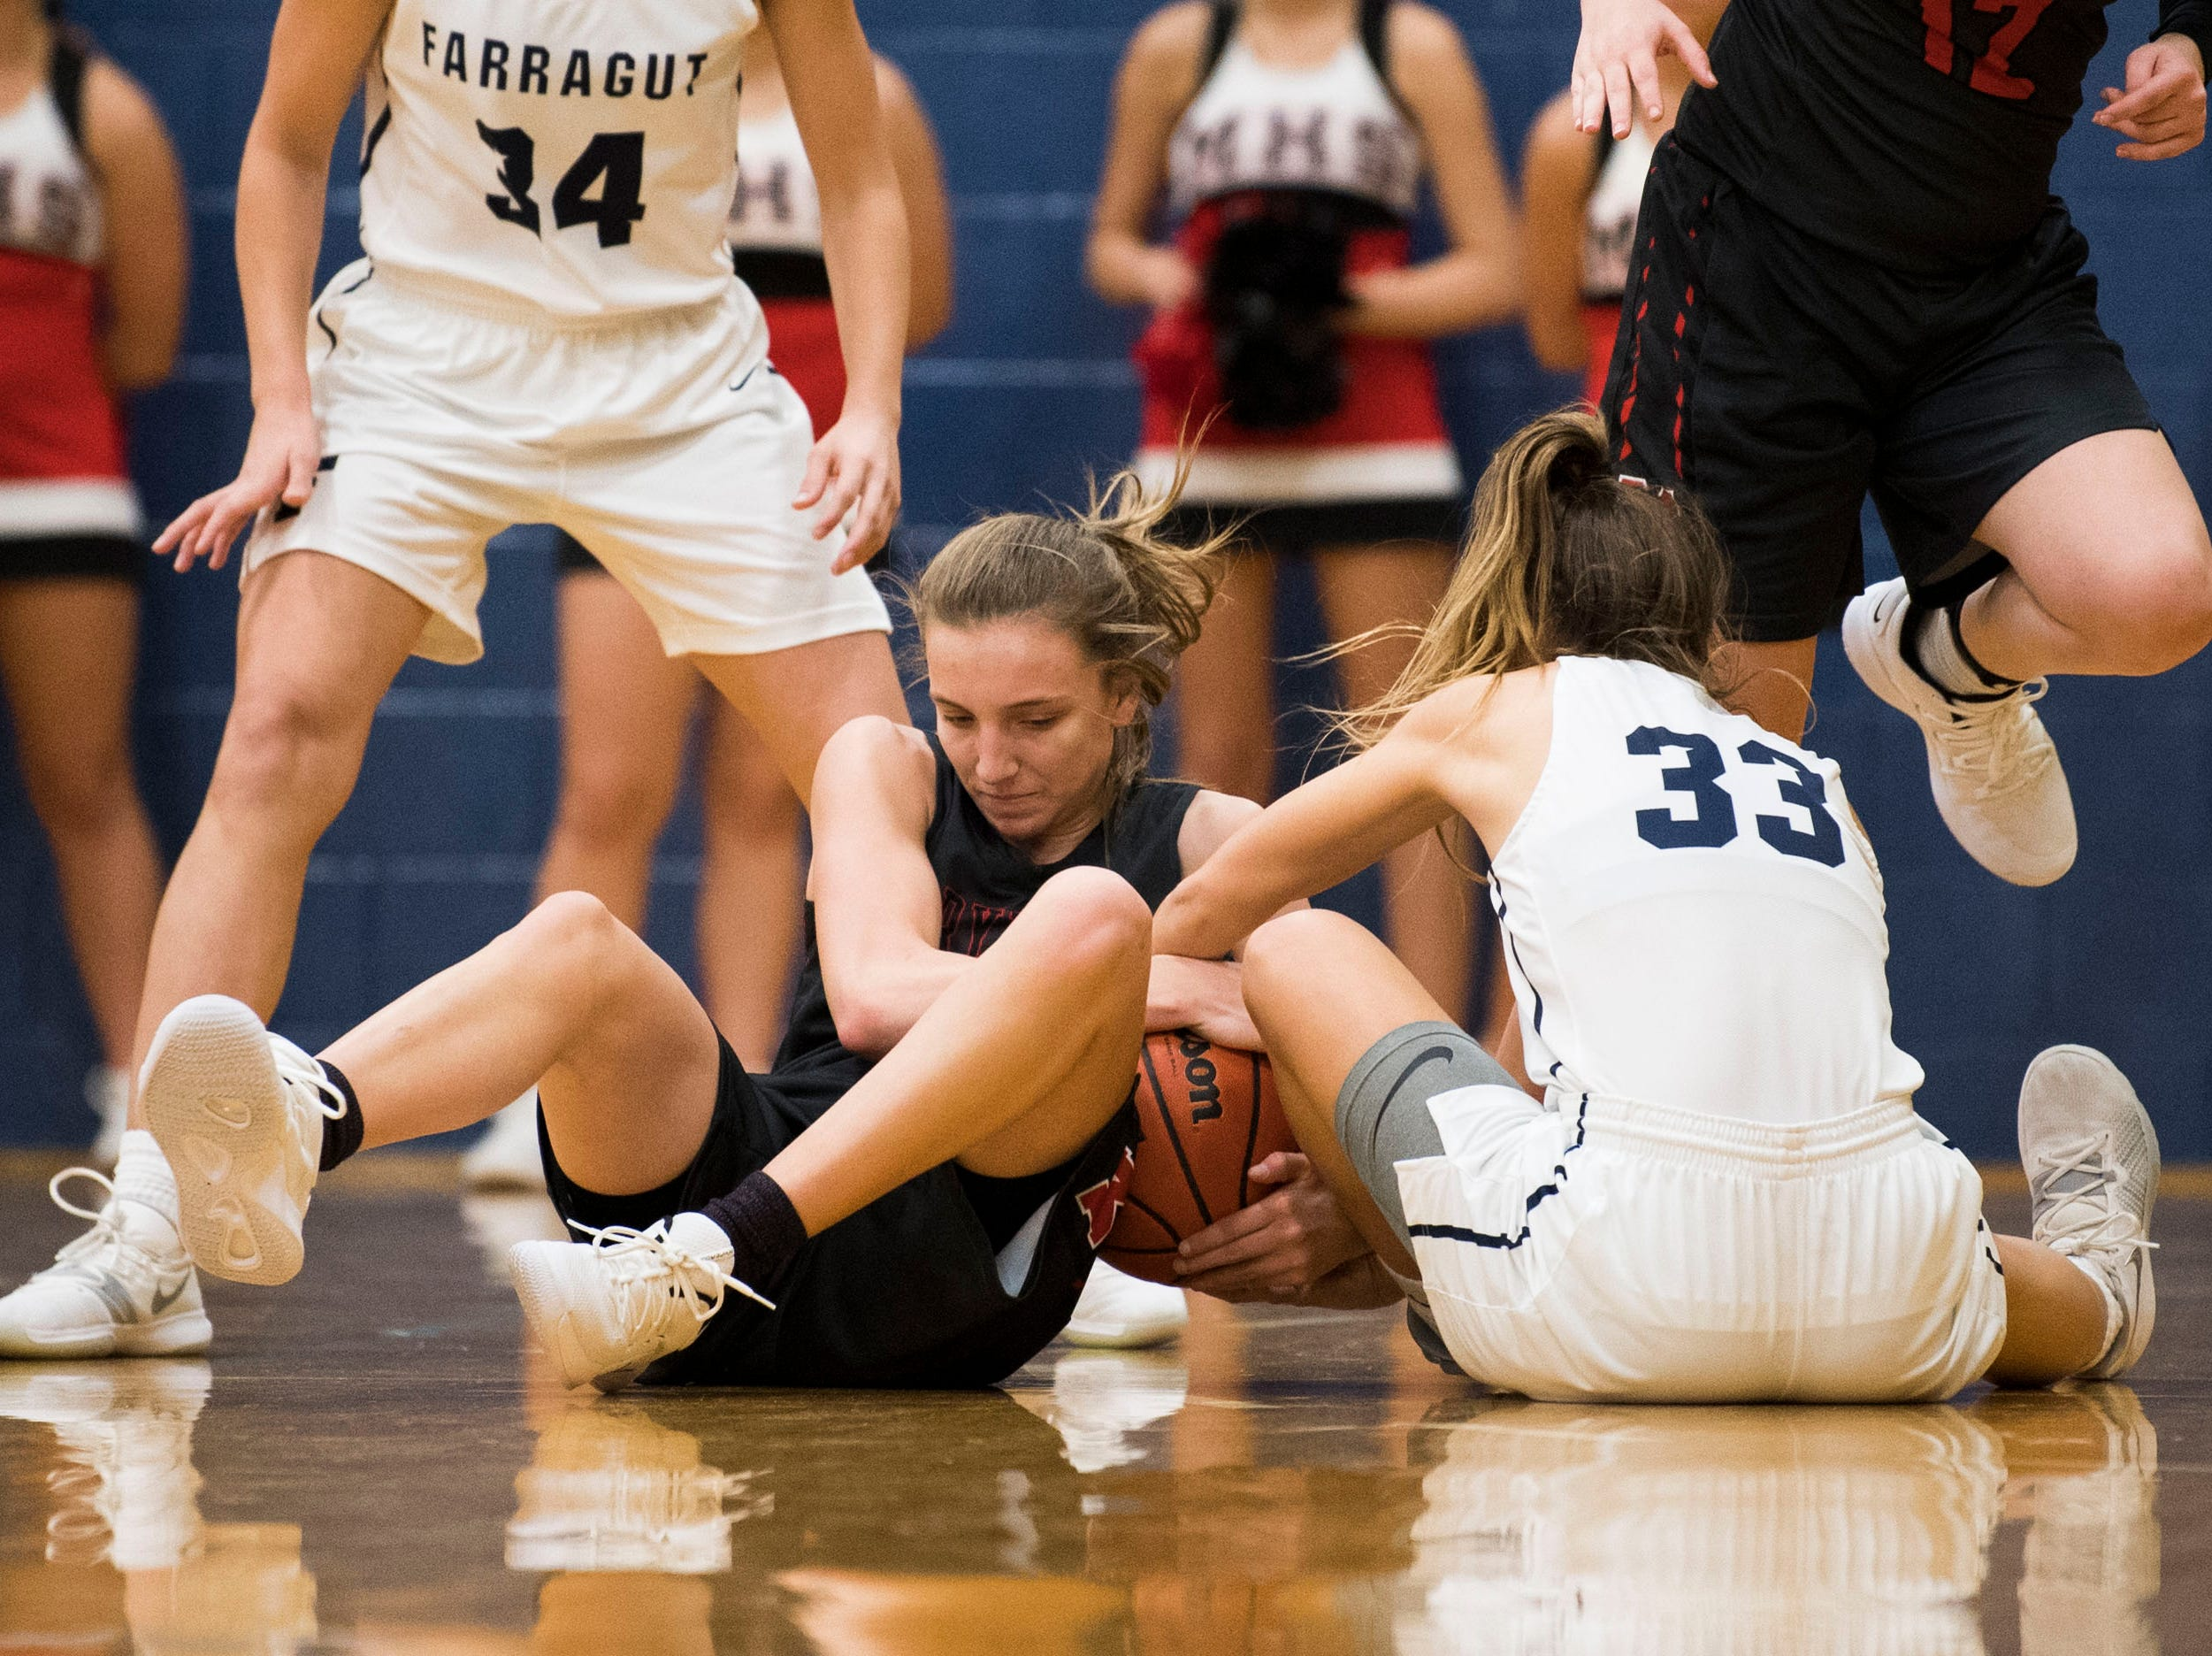 Farragut's Sydney Chapman (33) and a Maryville player fight for possession during a high school basketball game between Maryville and Farragut at Farragut, Friday, Jan. 11, 2019.